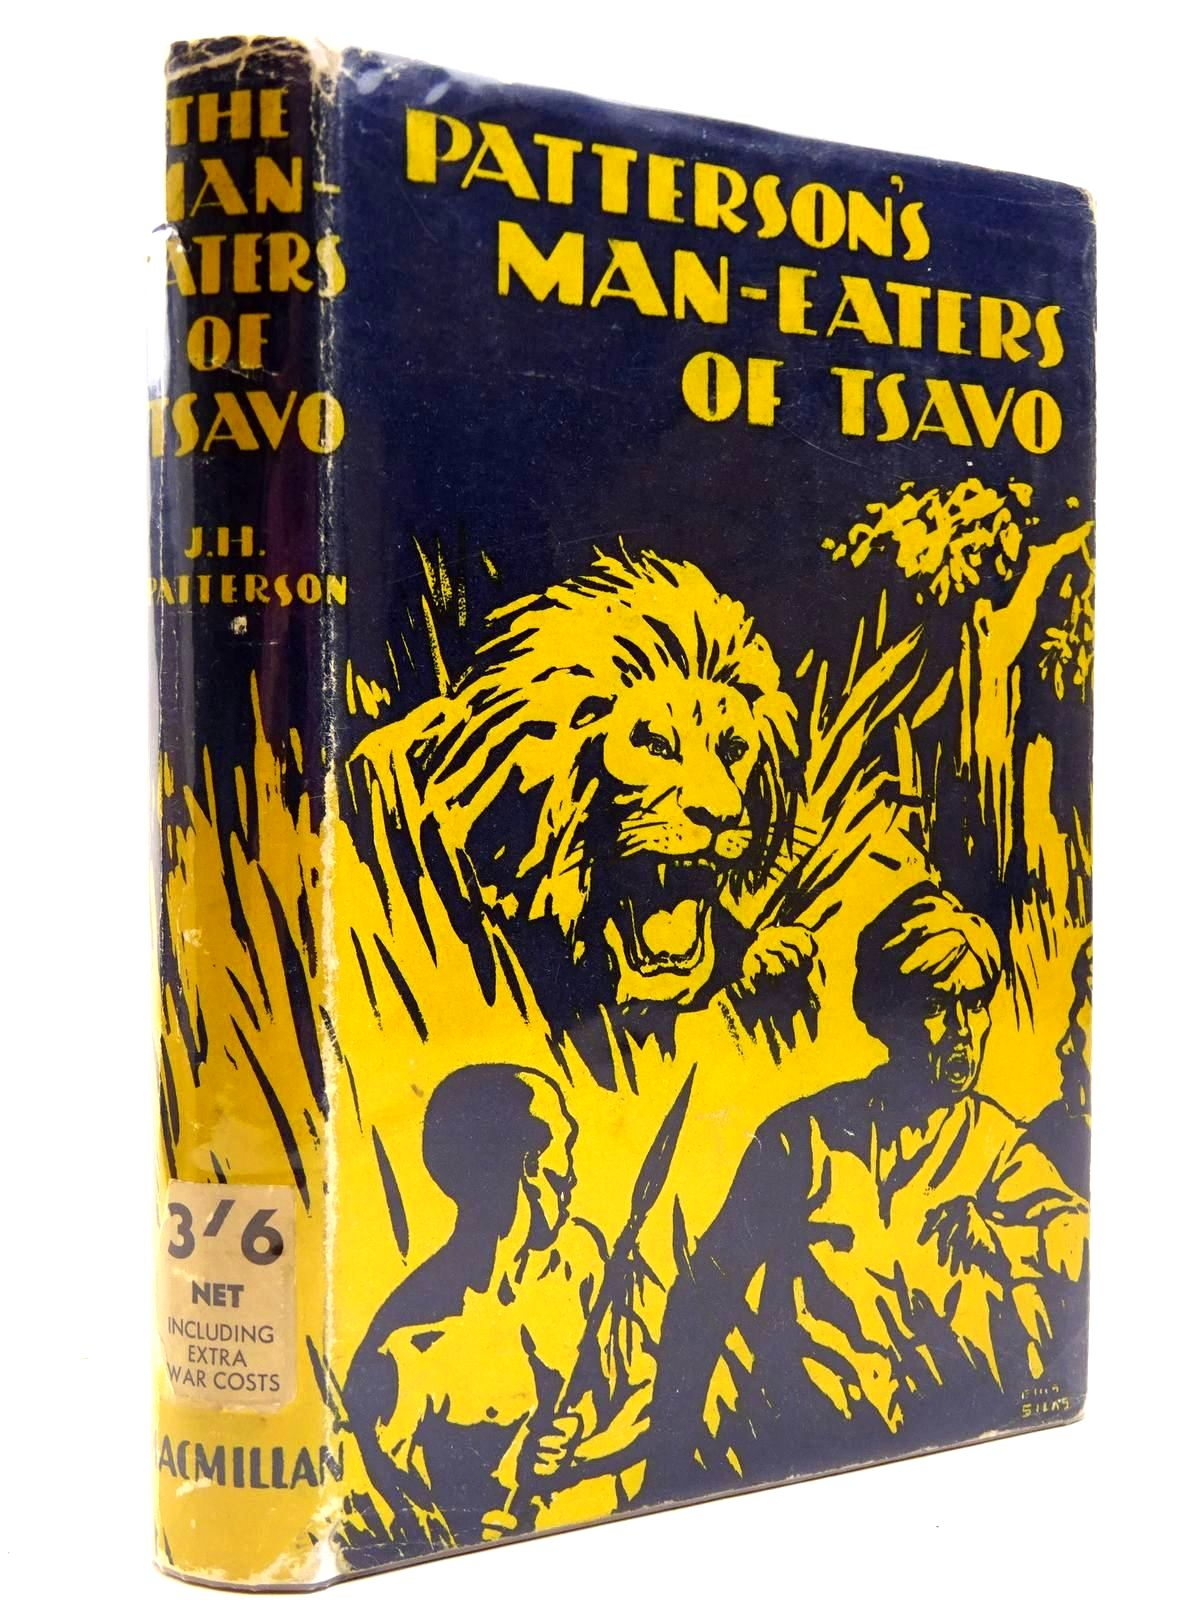 Photo of THE MAN-EATERS OF TSAVO written by Patterson, J.H. published by Macmillan & Co. Ltd. (STOCK CODE: 2131020)  for sale by Stella & Rose's Books